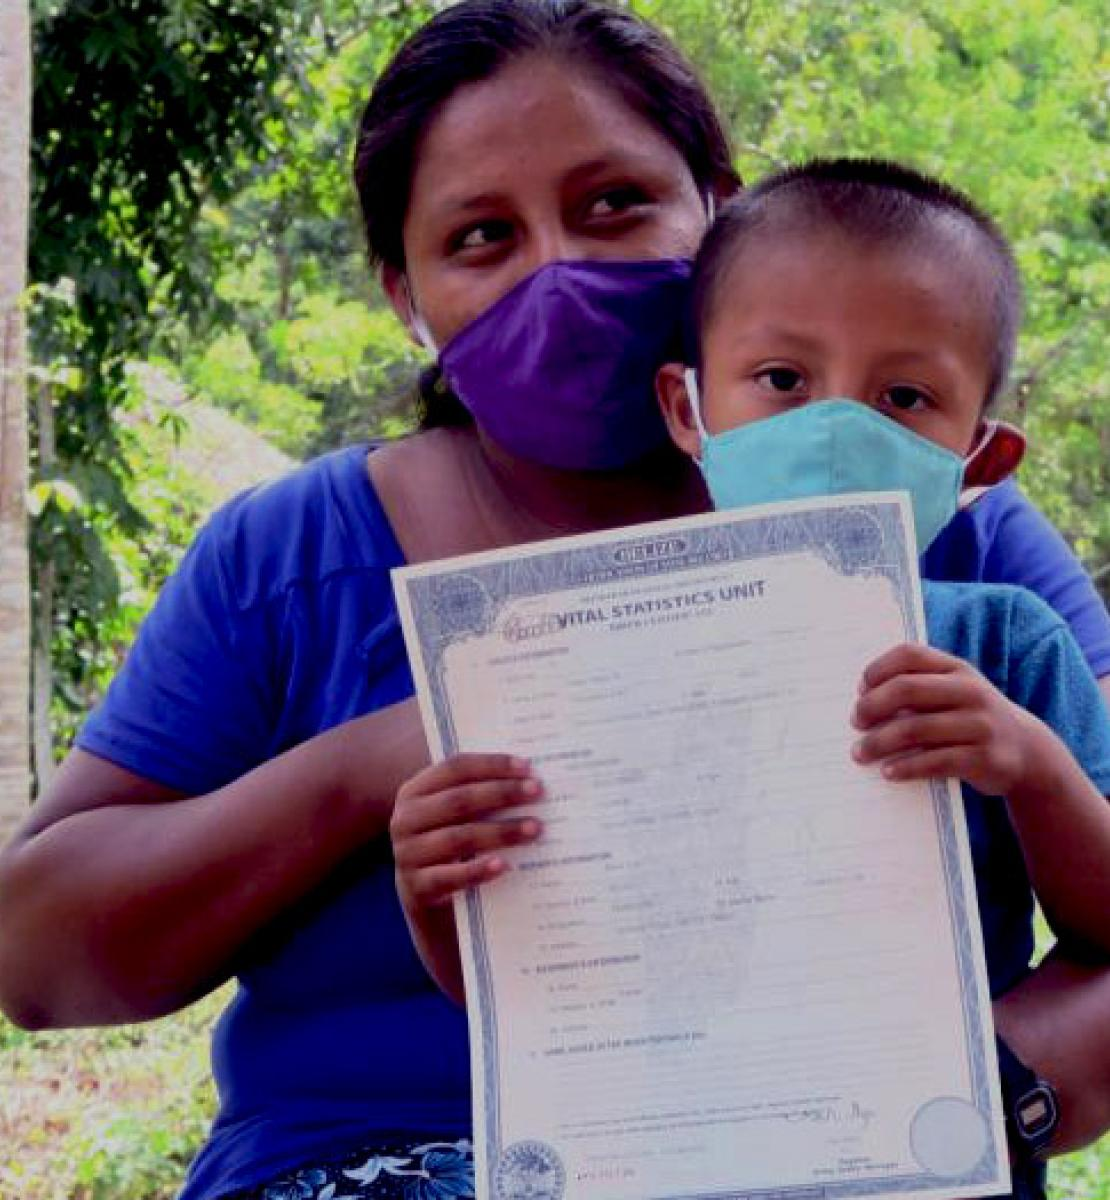 A mother wearing a protective face mask gazes to the left of the camera as she holds her son, also wearing a face covering. He proudly holds up his registration.